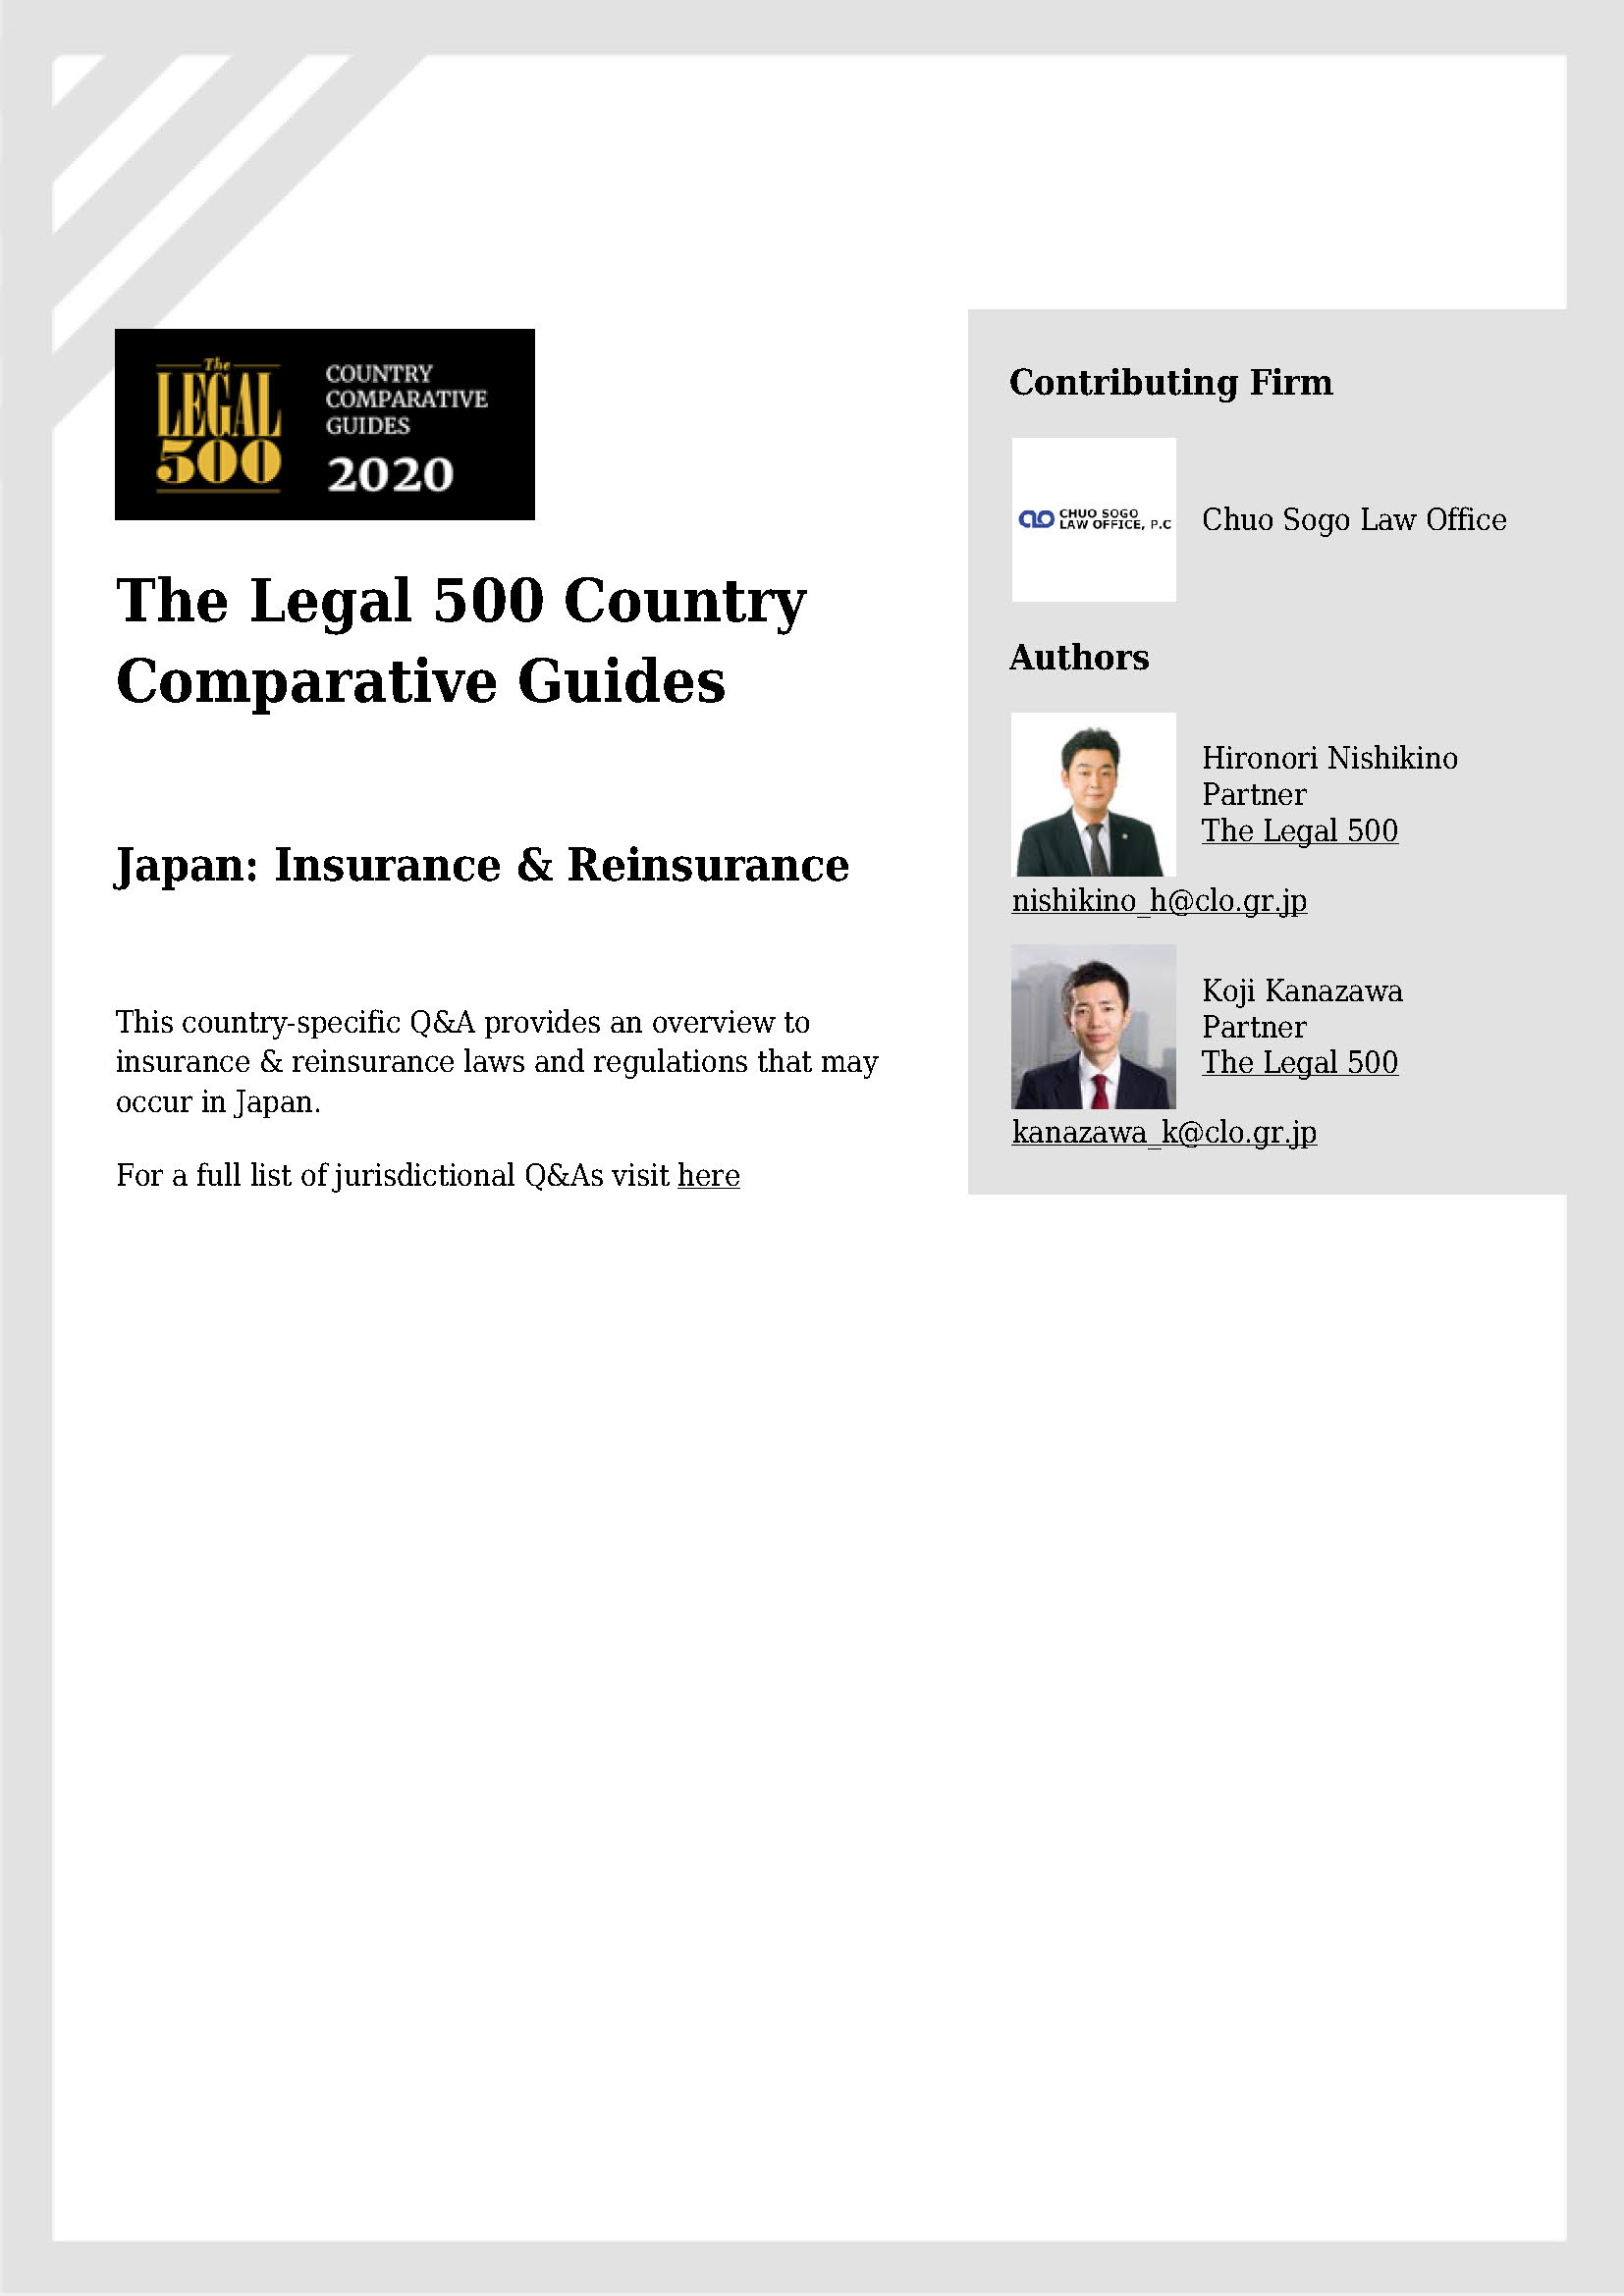 The Legal 500: 4th Edition Insurance & Reinsurance Comparative Guide